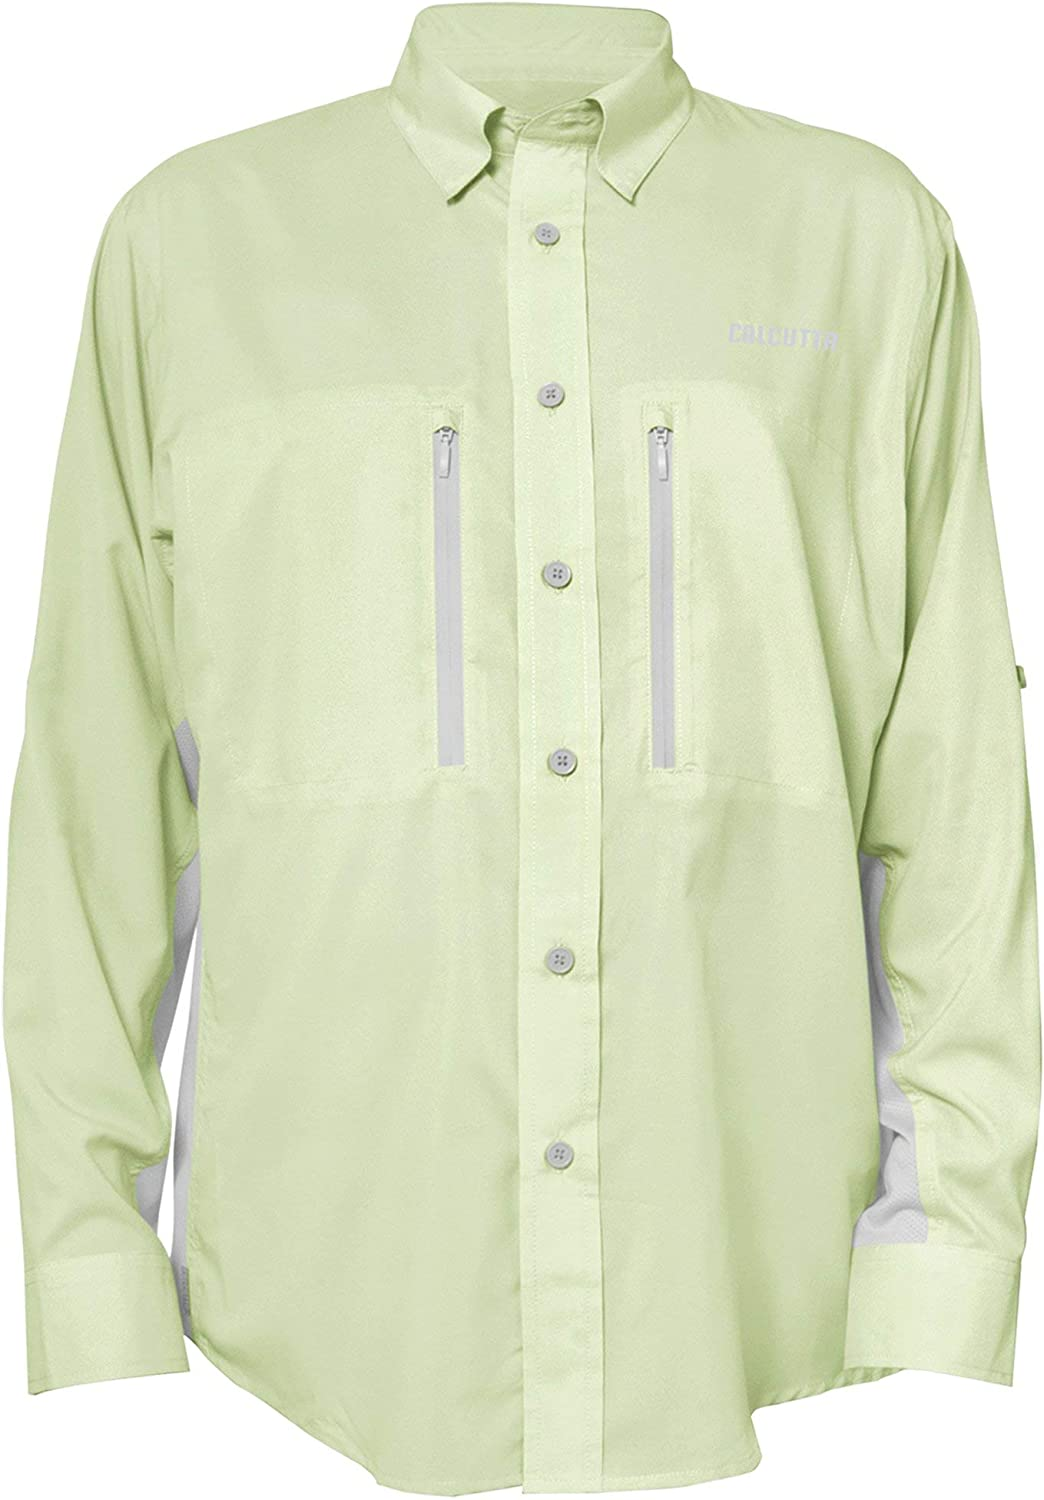 Calcutta Men's Long Sleeve Olive Fishing Shirt Outlet ☆ Free Shipping Max 89% OFF Performance